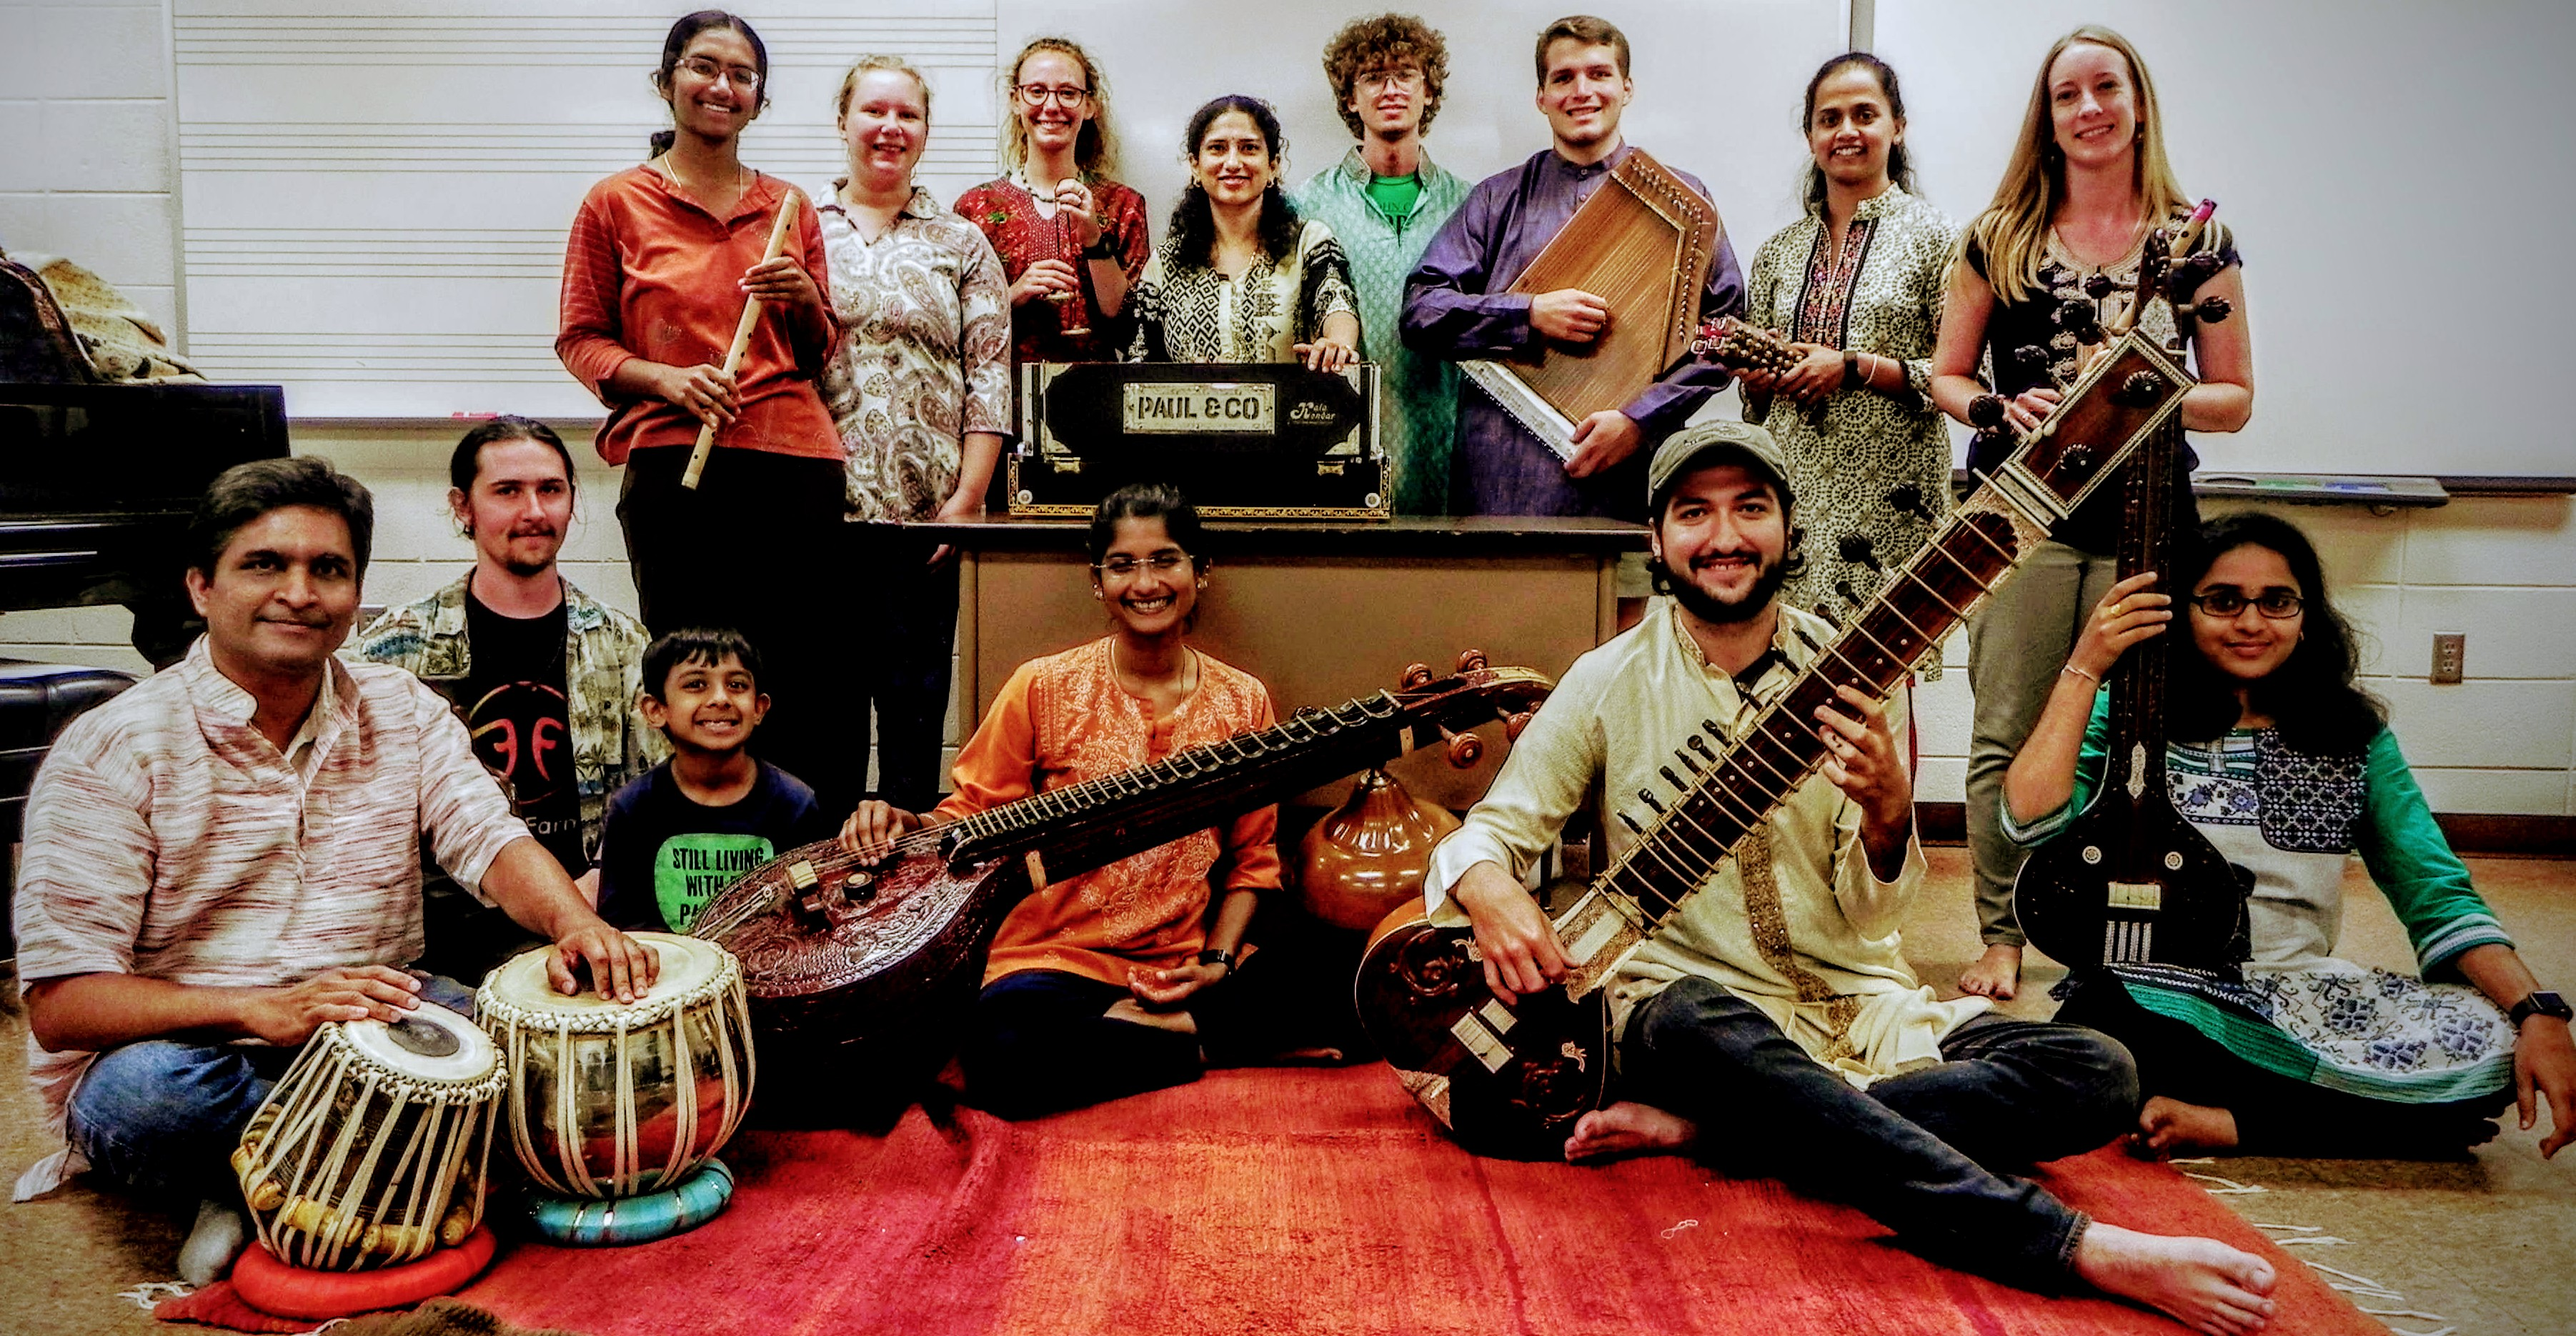 Members of the 2018 Auburn Indian Music Ensemble pose as a group.